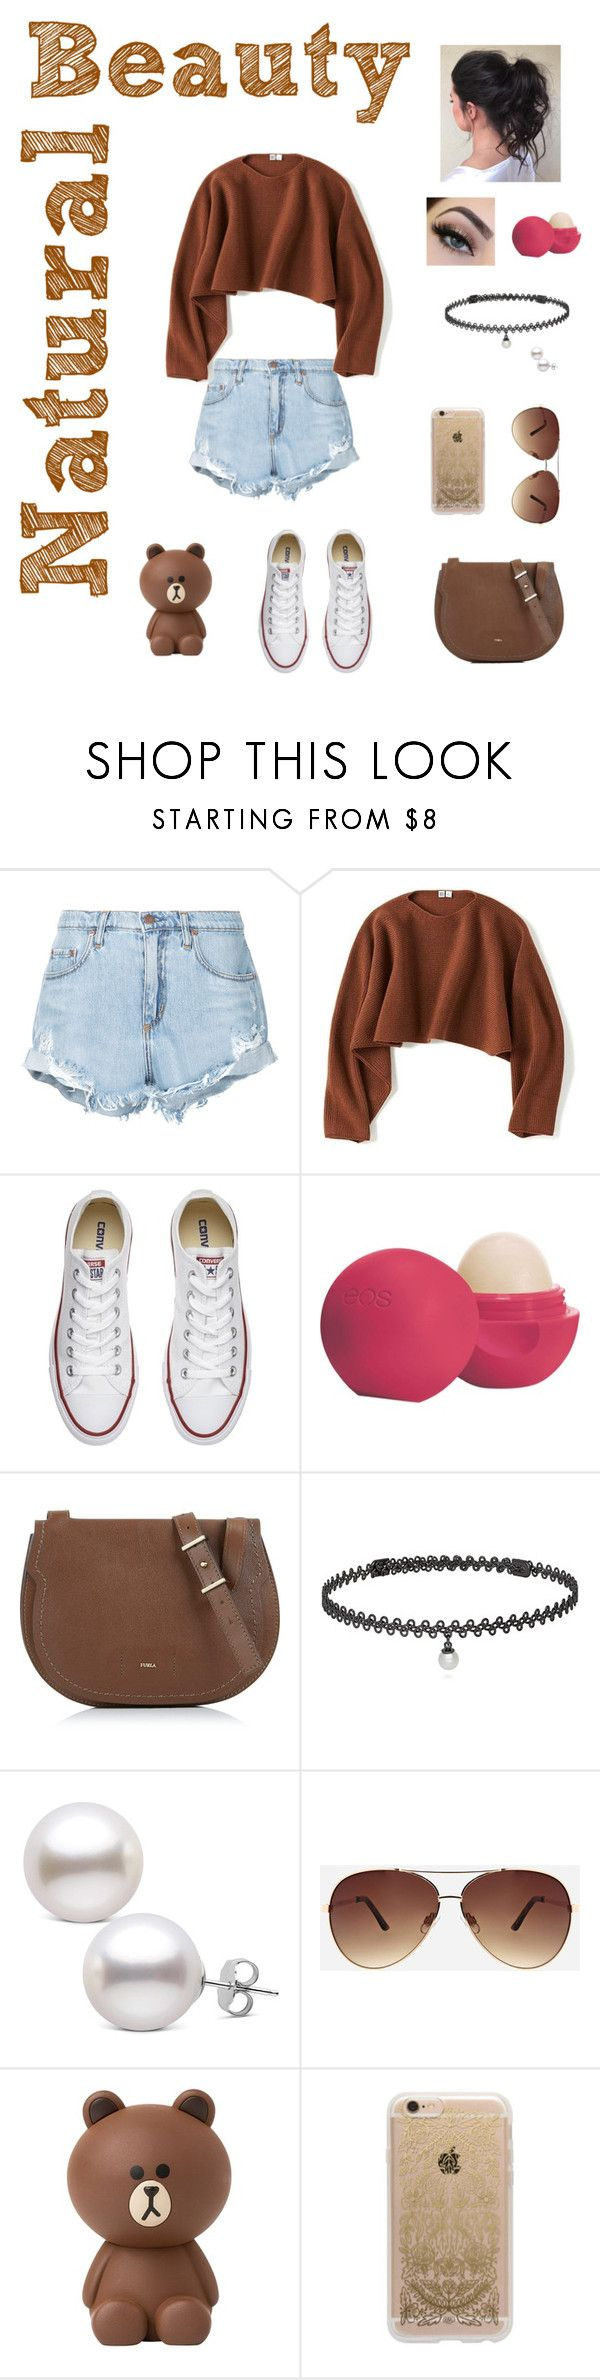 """""""Bear-y Good"""" by beauty55 ❤ liked on Polyvore featuring Nobody Denim, Uniqlo, Converse, Eos, Furla, BERRICLE, Ashley Stewart and Rifle Paper Co"""